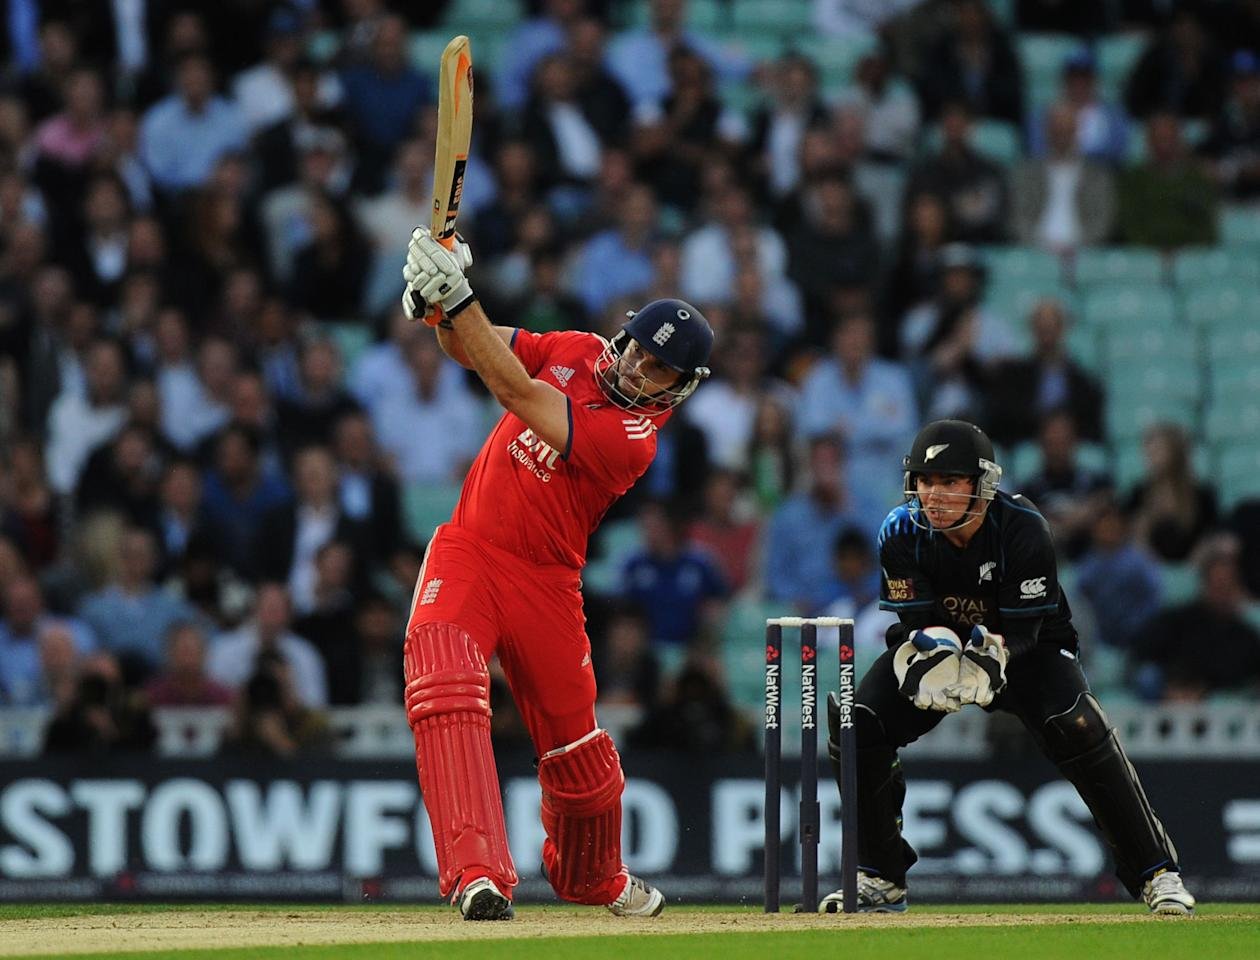 England's Michael Lumb hits a boundary during the Natwest International Twenty20 match at the Kia Oval, London.